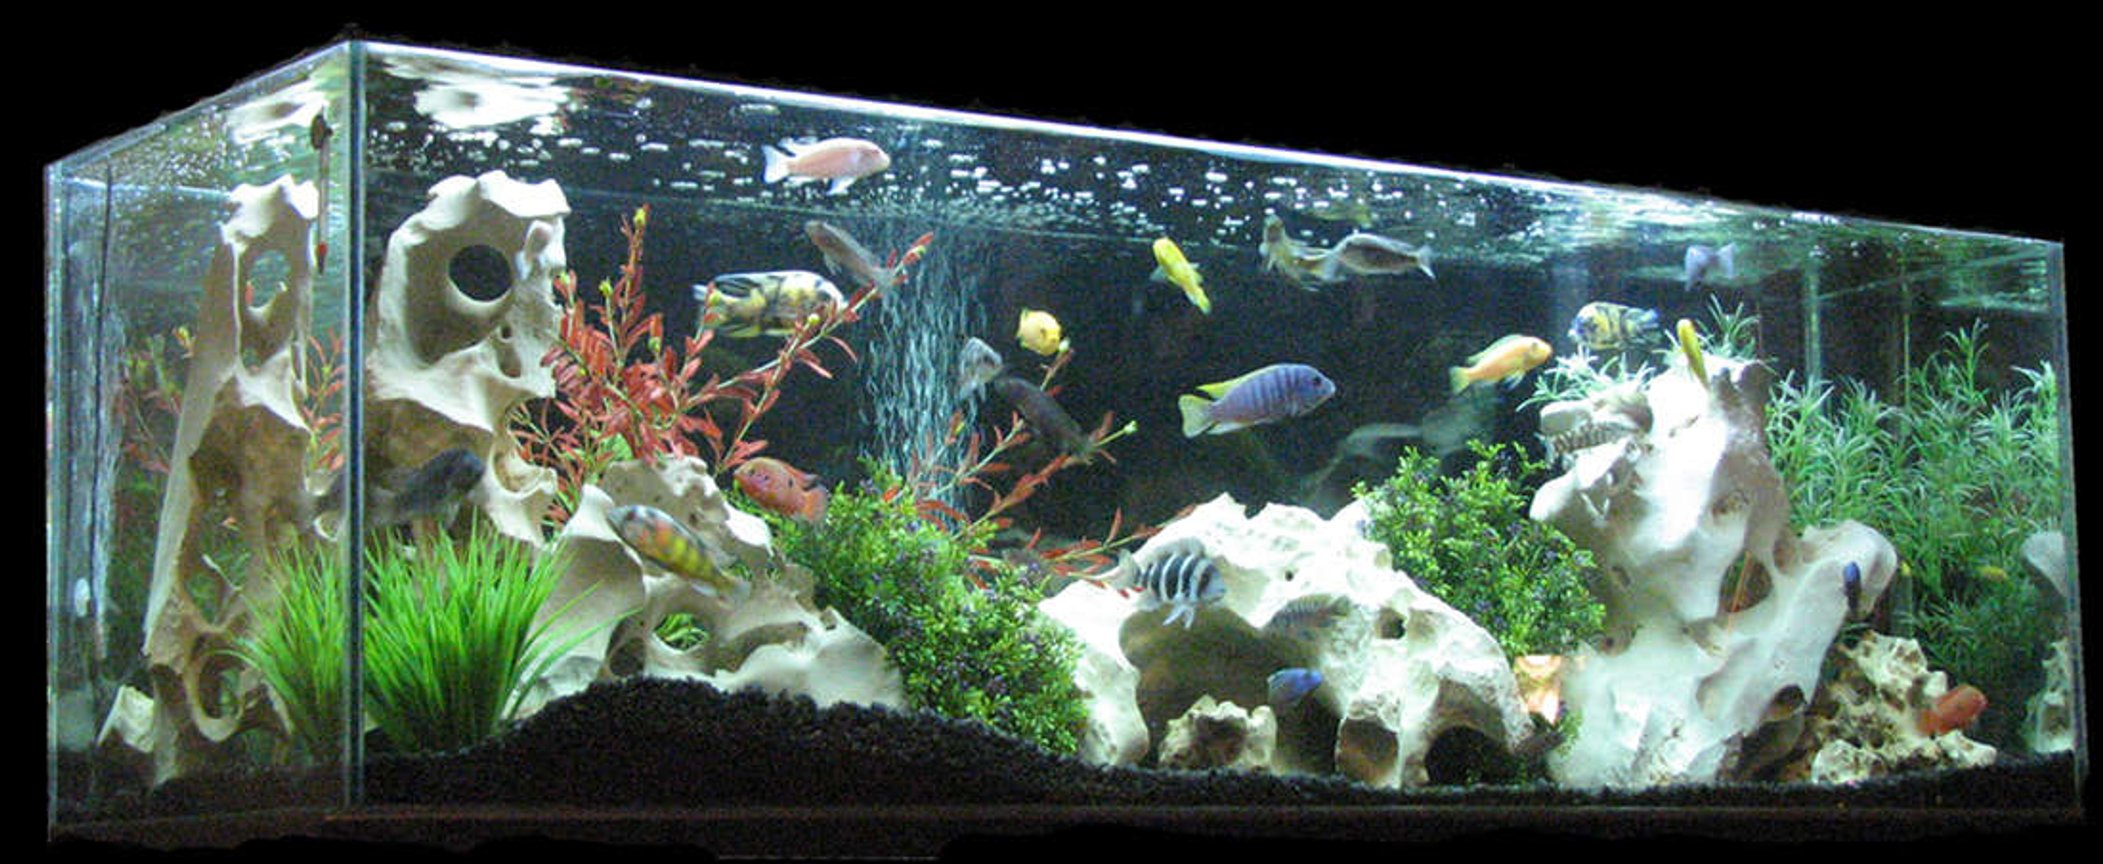 110 gallons freshwater fish tank (mostly fish and non-living decorations) - 110 Gal tank sits in my living room. I got it for a steal on Criagslist. It is 5' long and the highlight of my room. I have both a blue and white light but typically only have the white on.